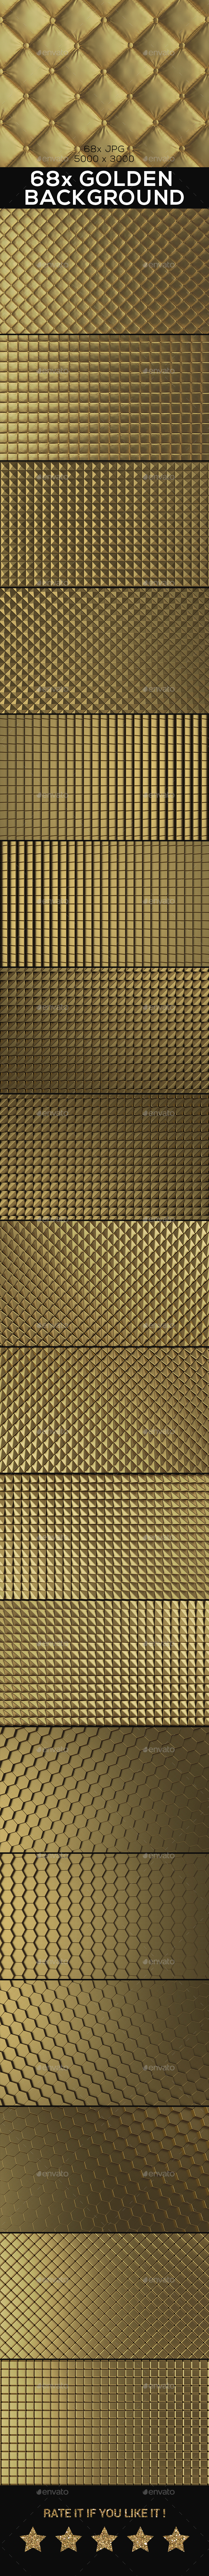 Golden Backgrounds - Backgrounds Graphics